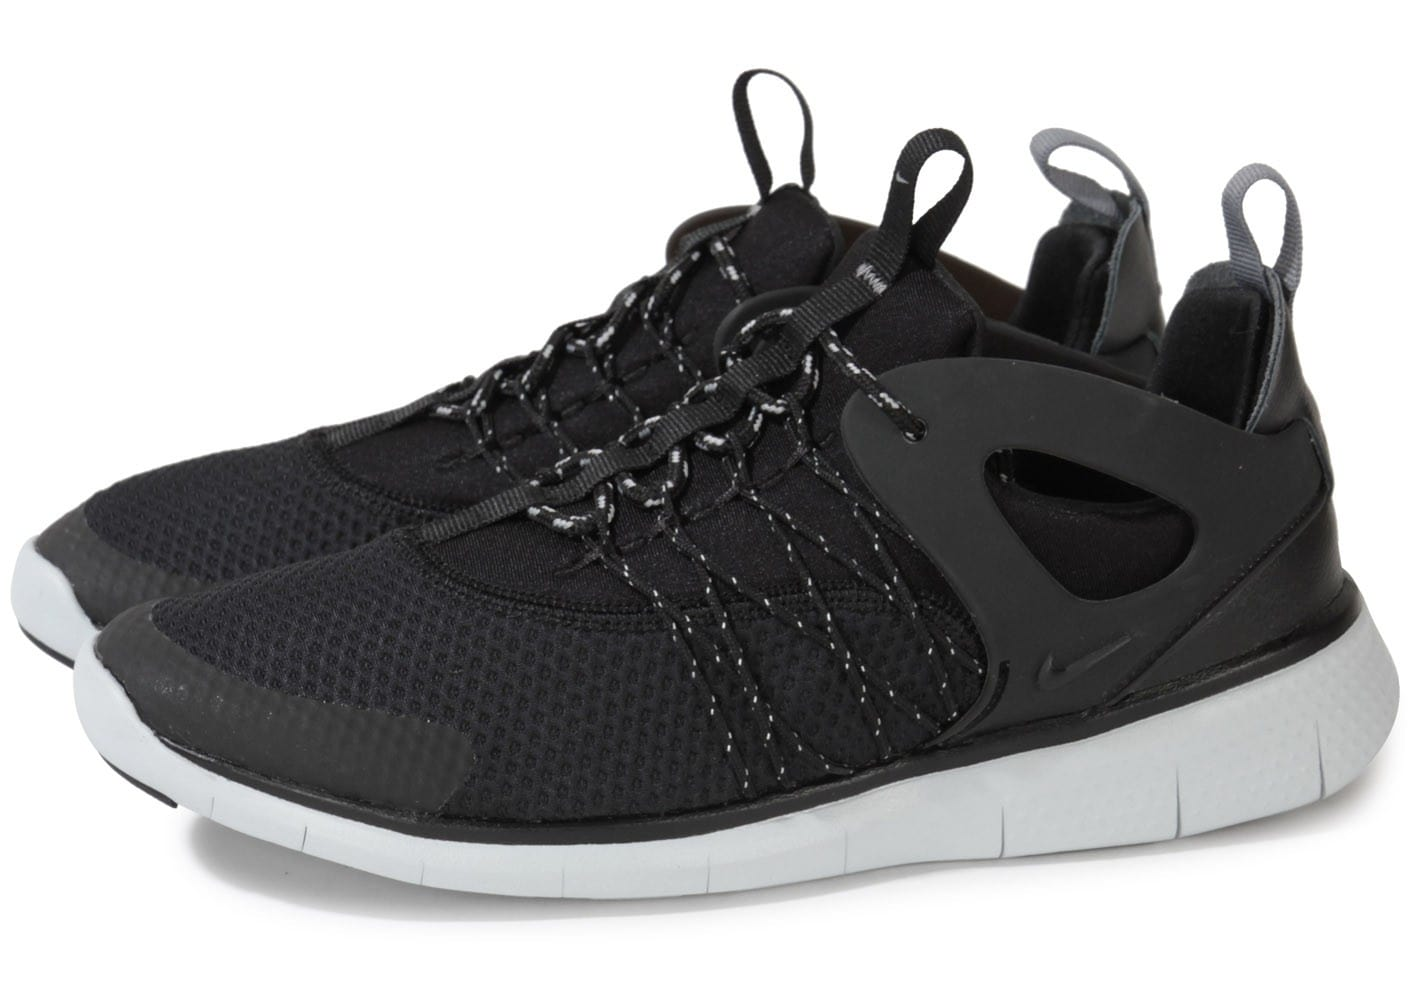 nike free viritous noire chaussures chaussures chausport. Black Bedroom Furniture Sets. Home Design Ideas